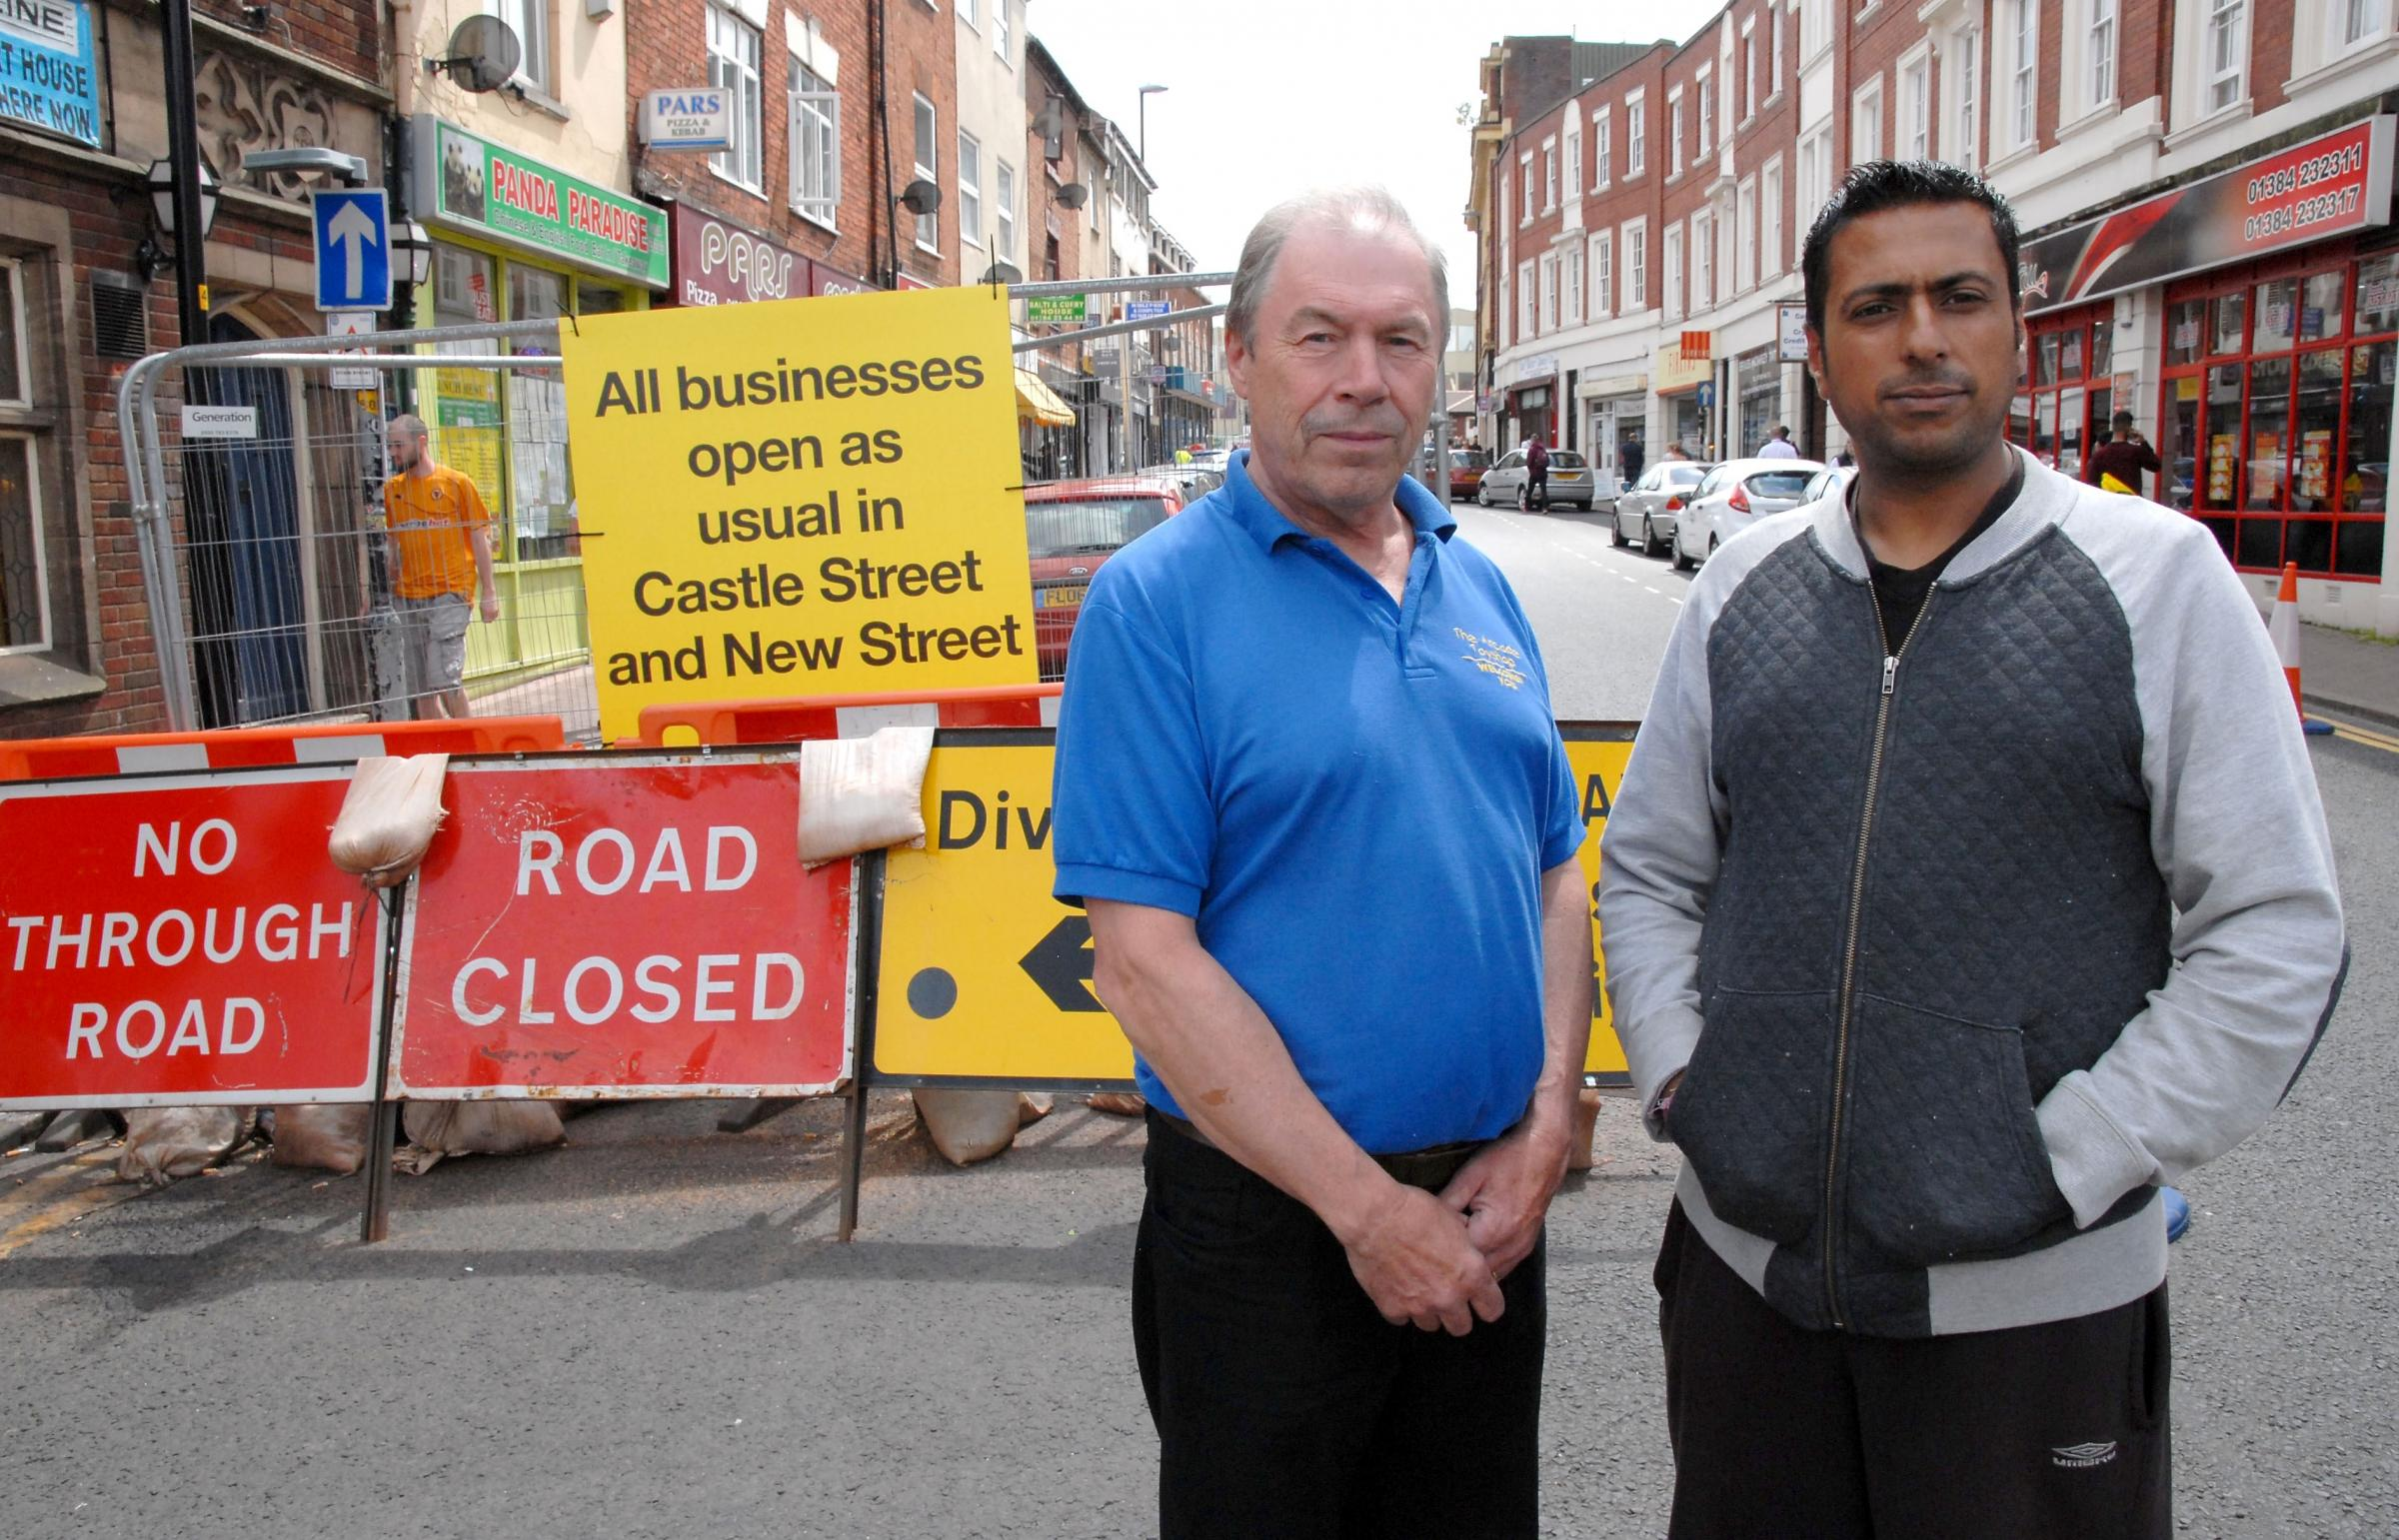 Dudley traders Alan Caswell and Naginder Singh say town centre revamp work in killing trade